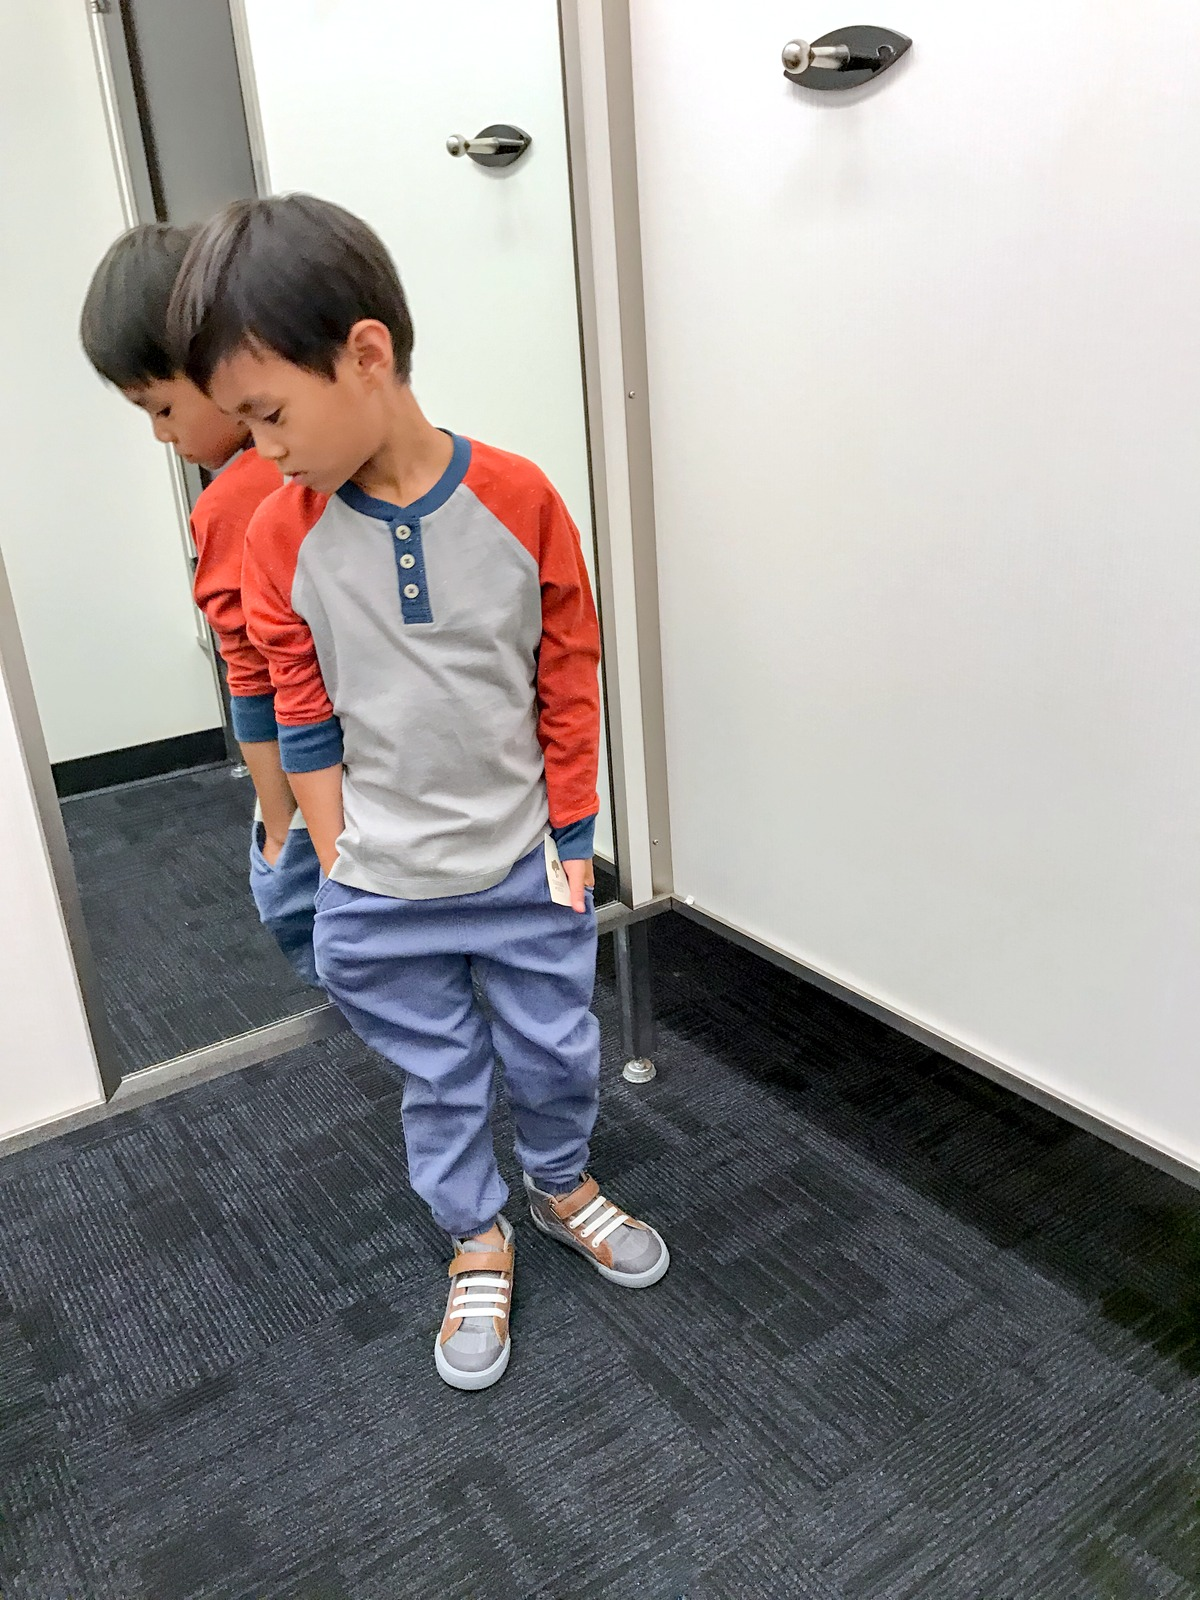 Nordstrom Sale: Best of Baby Essentials + Kid's Fashion by Utah fashion blogger Sandy A La Mode